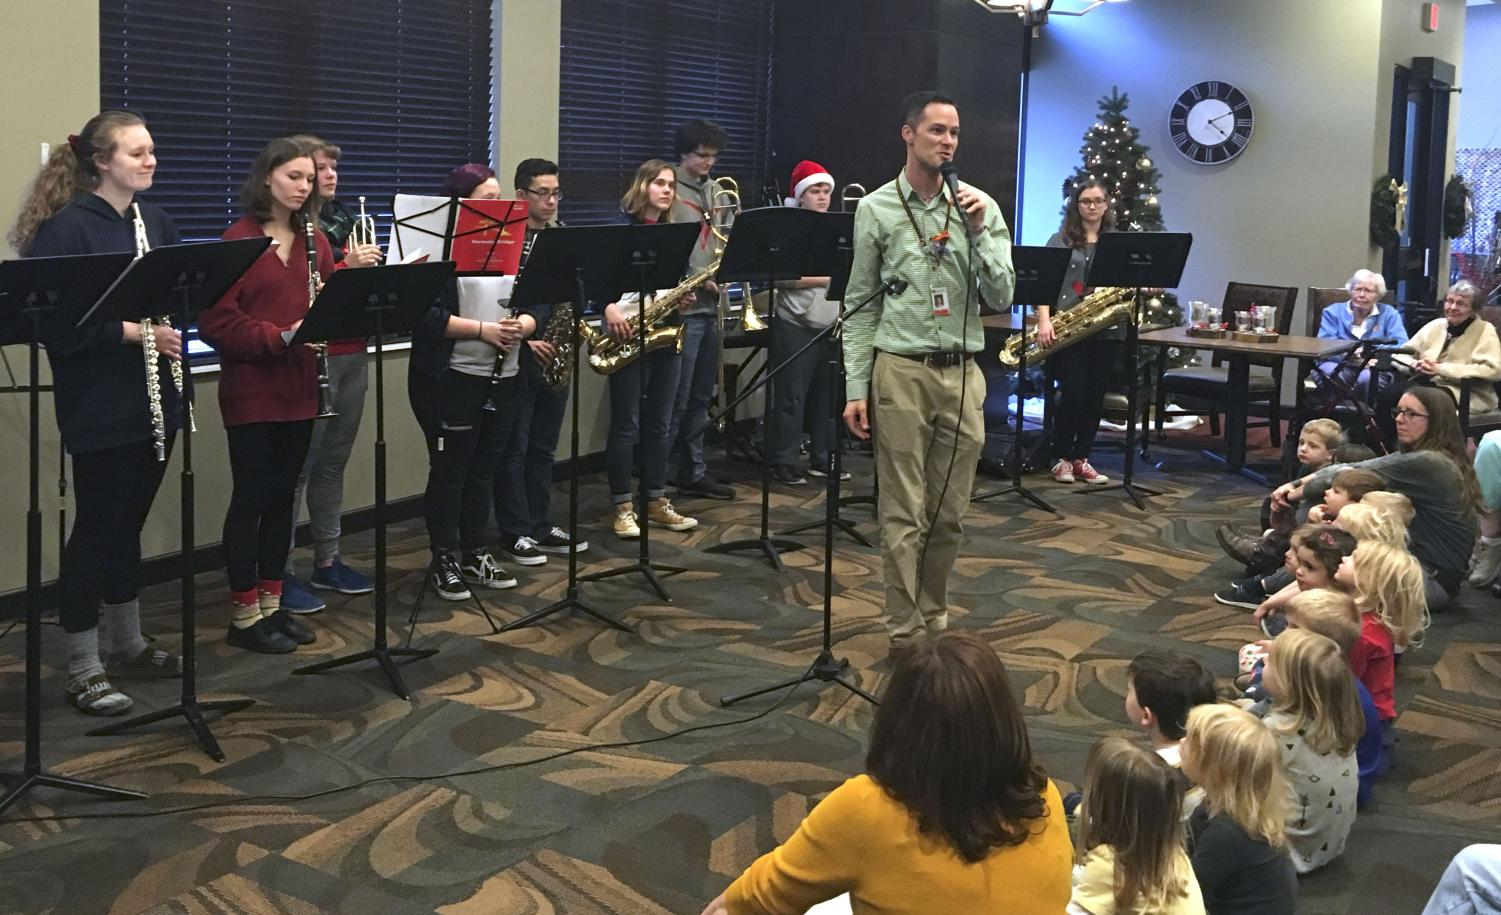 A small group from Park bands performs at TowerLight Senior Living Dec. 17, 2018. The group is called Harmony Bridge and they perform about twice a year at various locations.